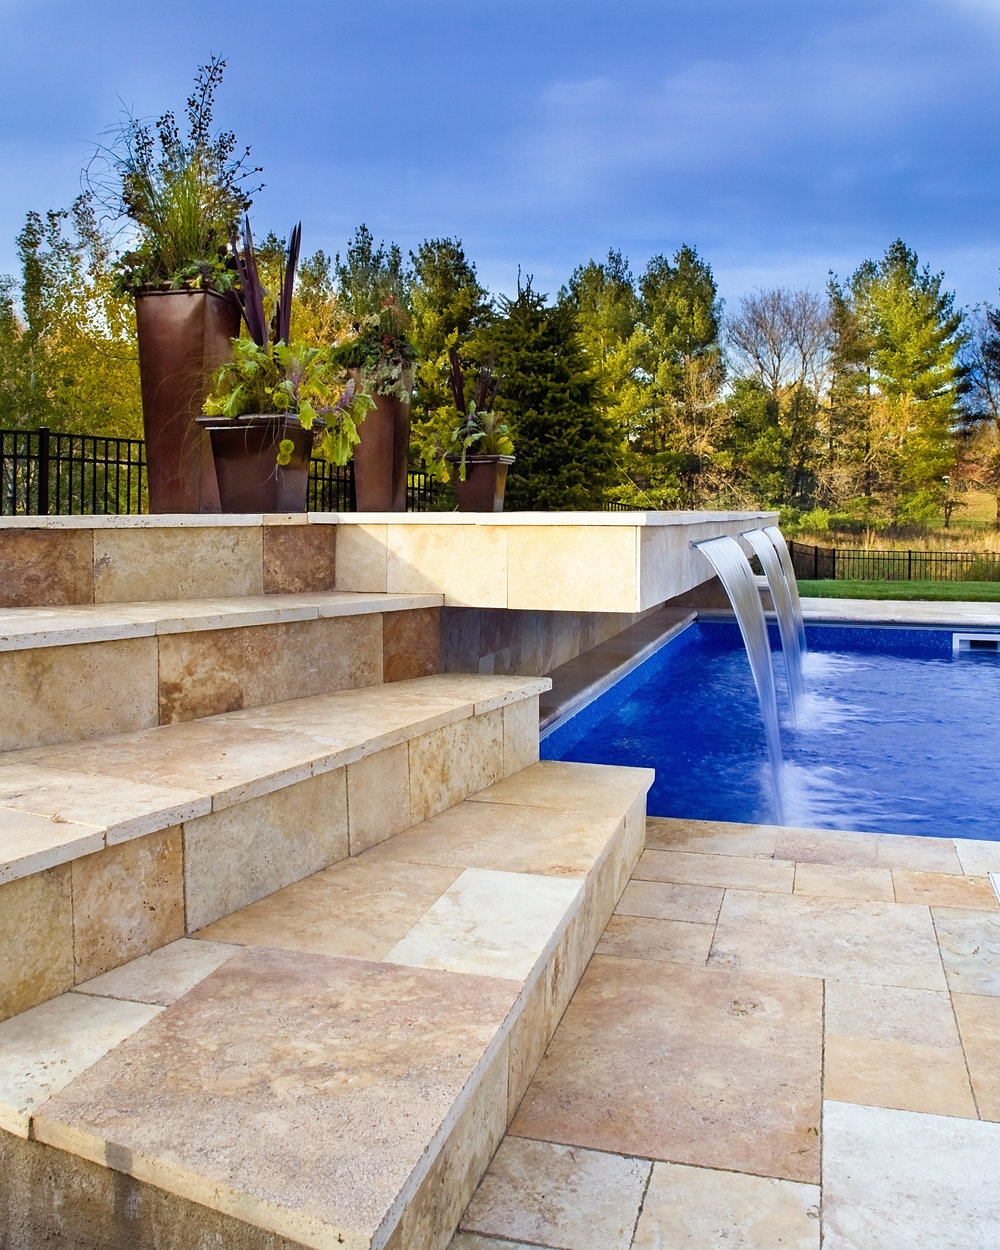 Lake Minnetonka area home enjoys a place to jump, sit or enjoy the sun as it overlooks the beautiful stone tile.